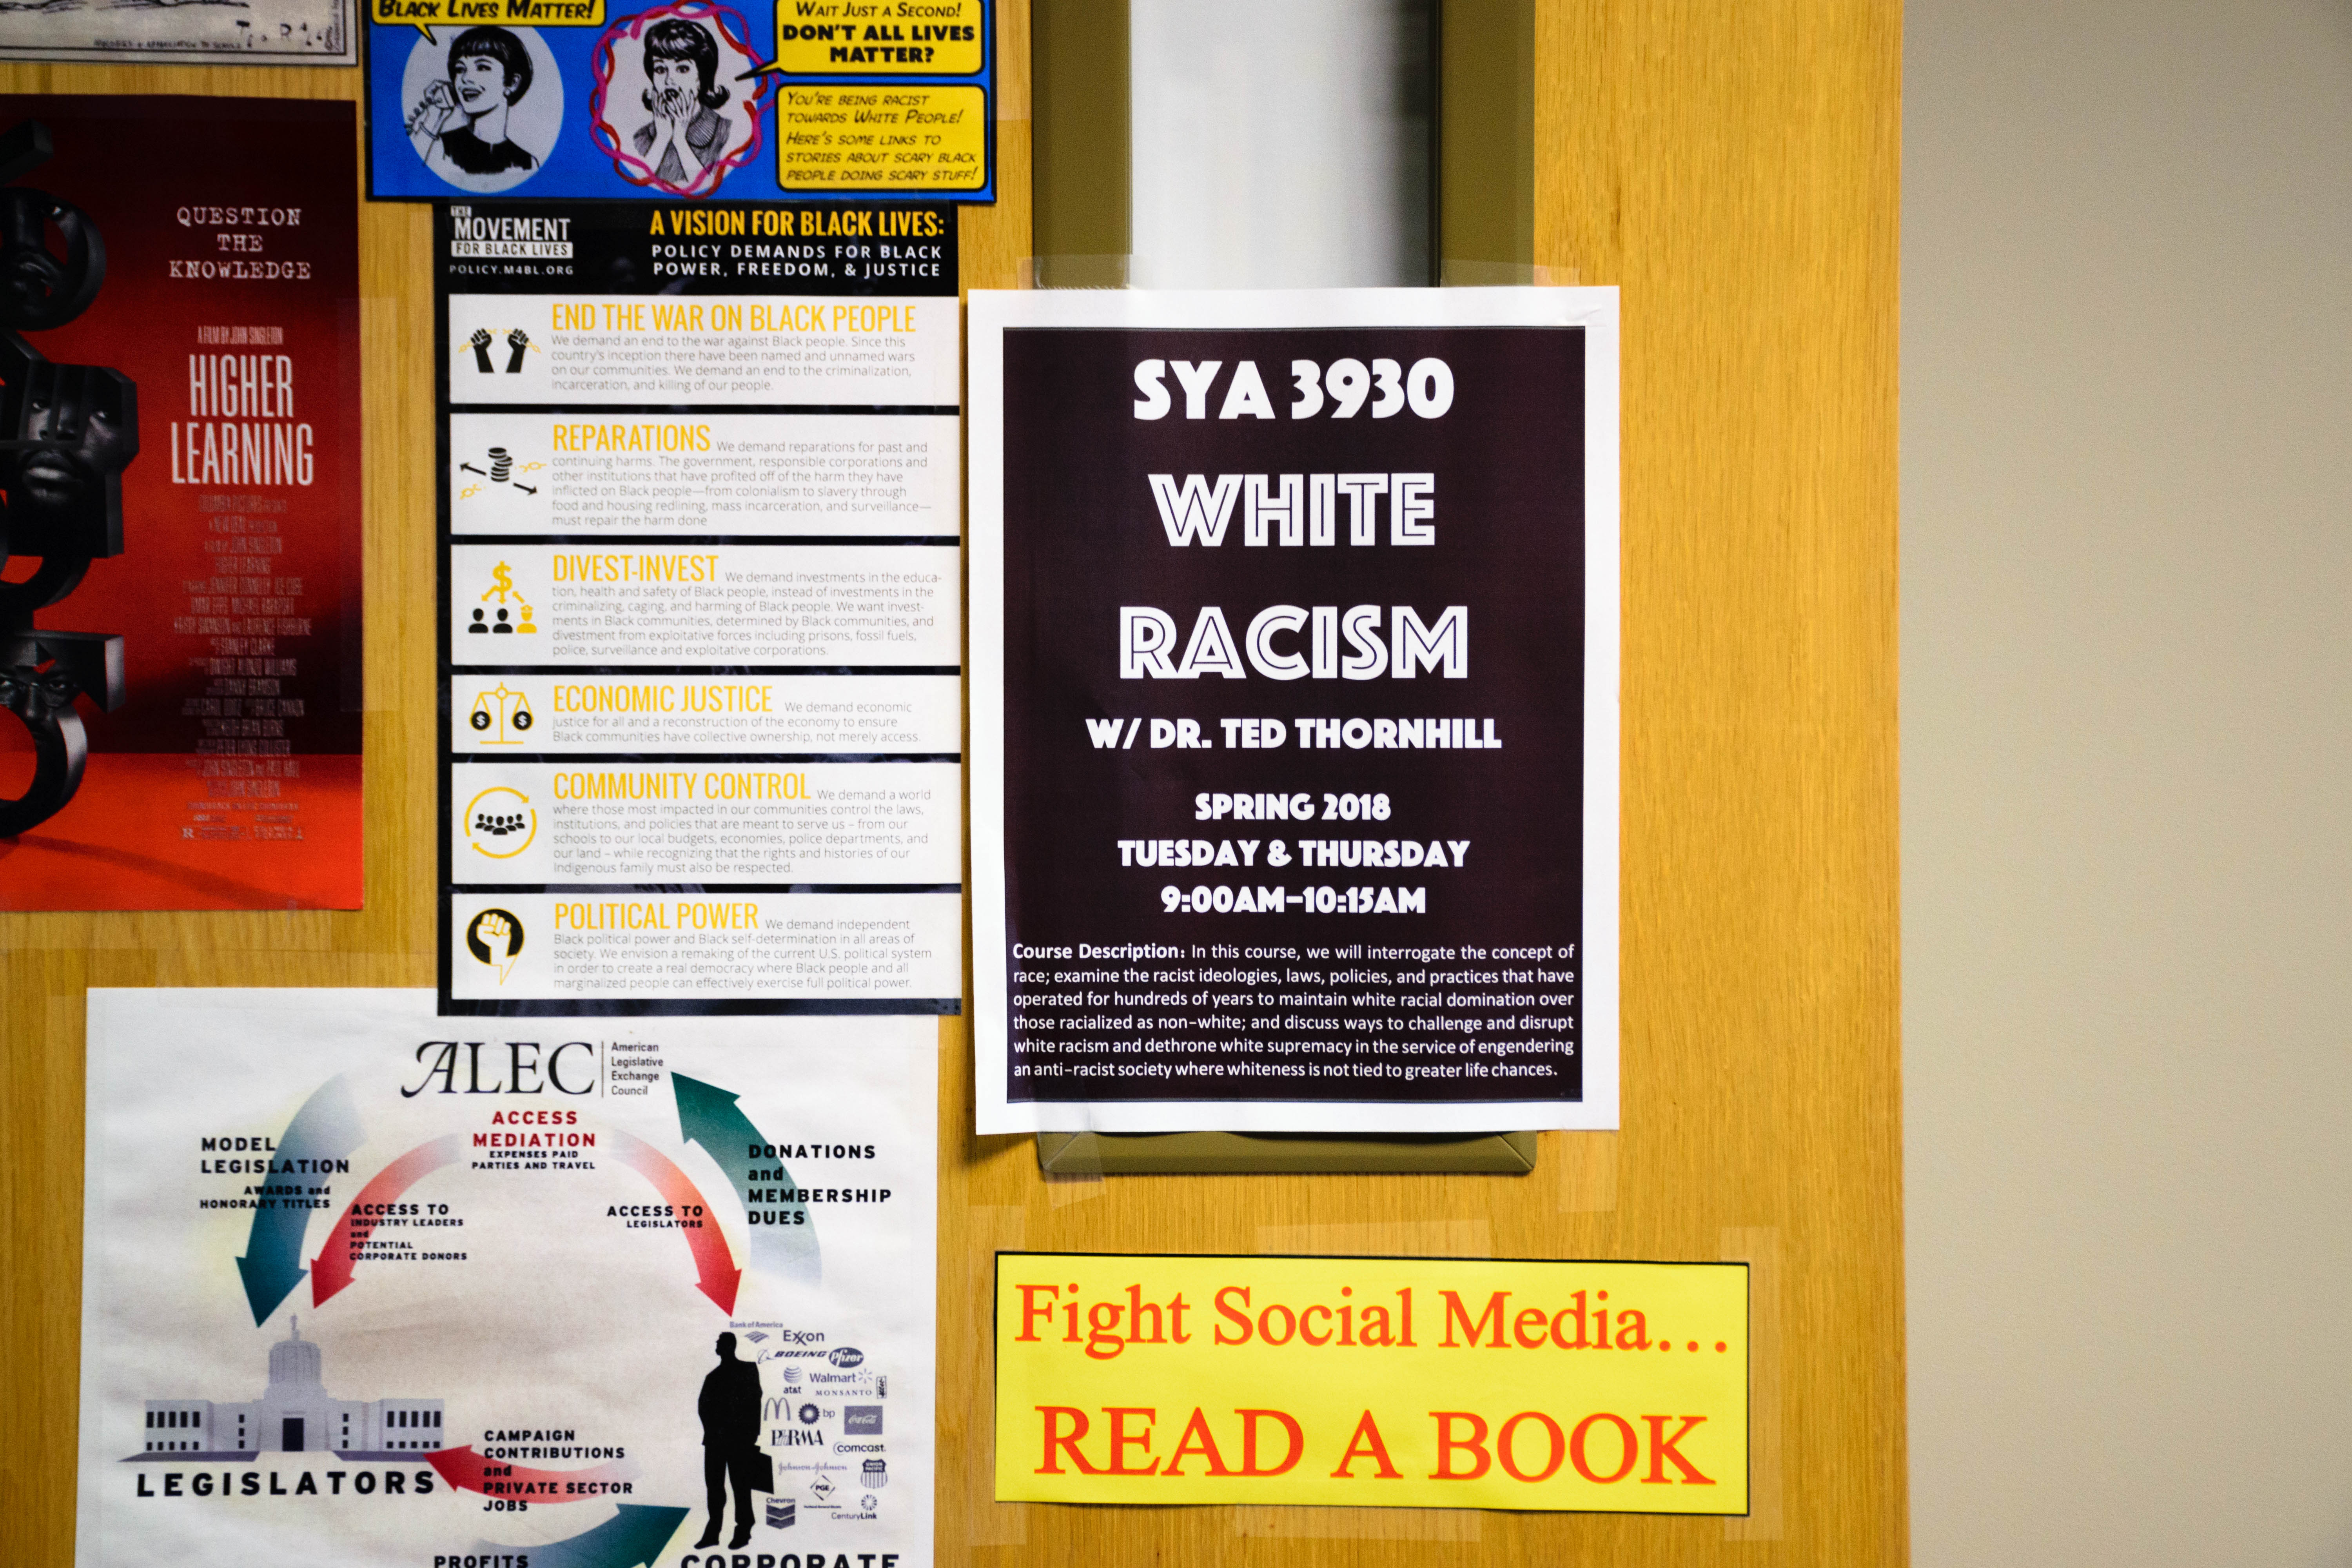 an introduction to the issue of whiteness racism Studying and teaching racism is a complex issue  racisms: an introduction introduces practical methods which enable students to think coherently 8 whiteness 117:.